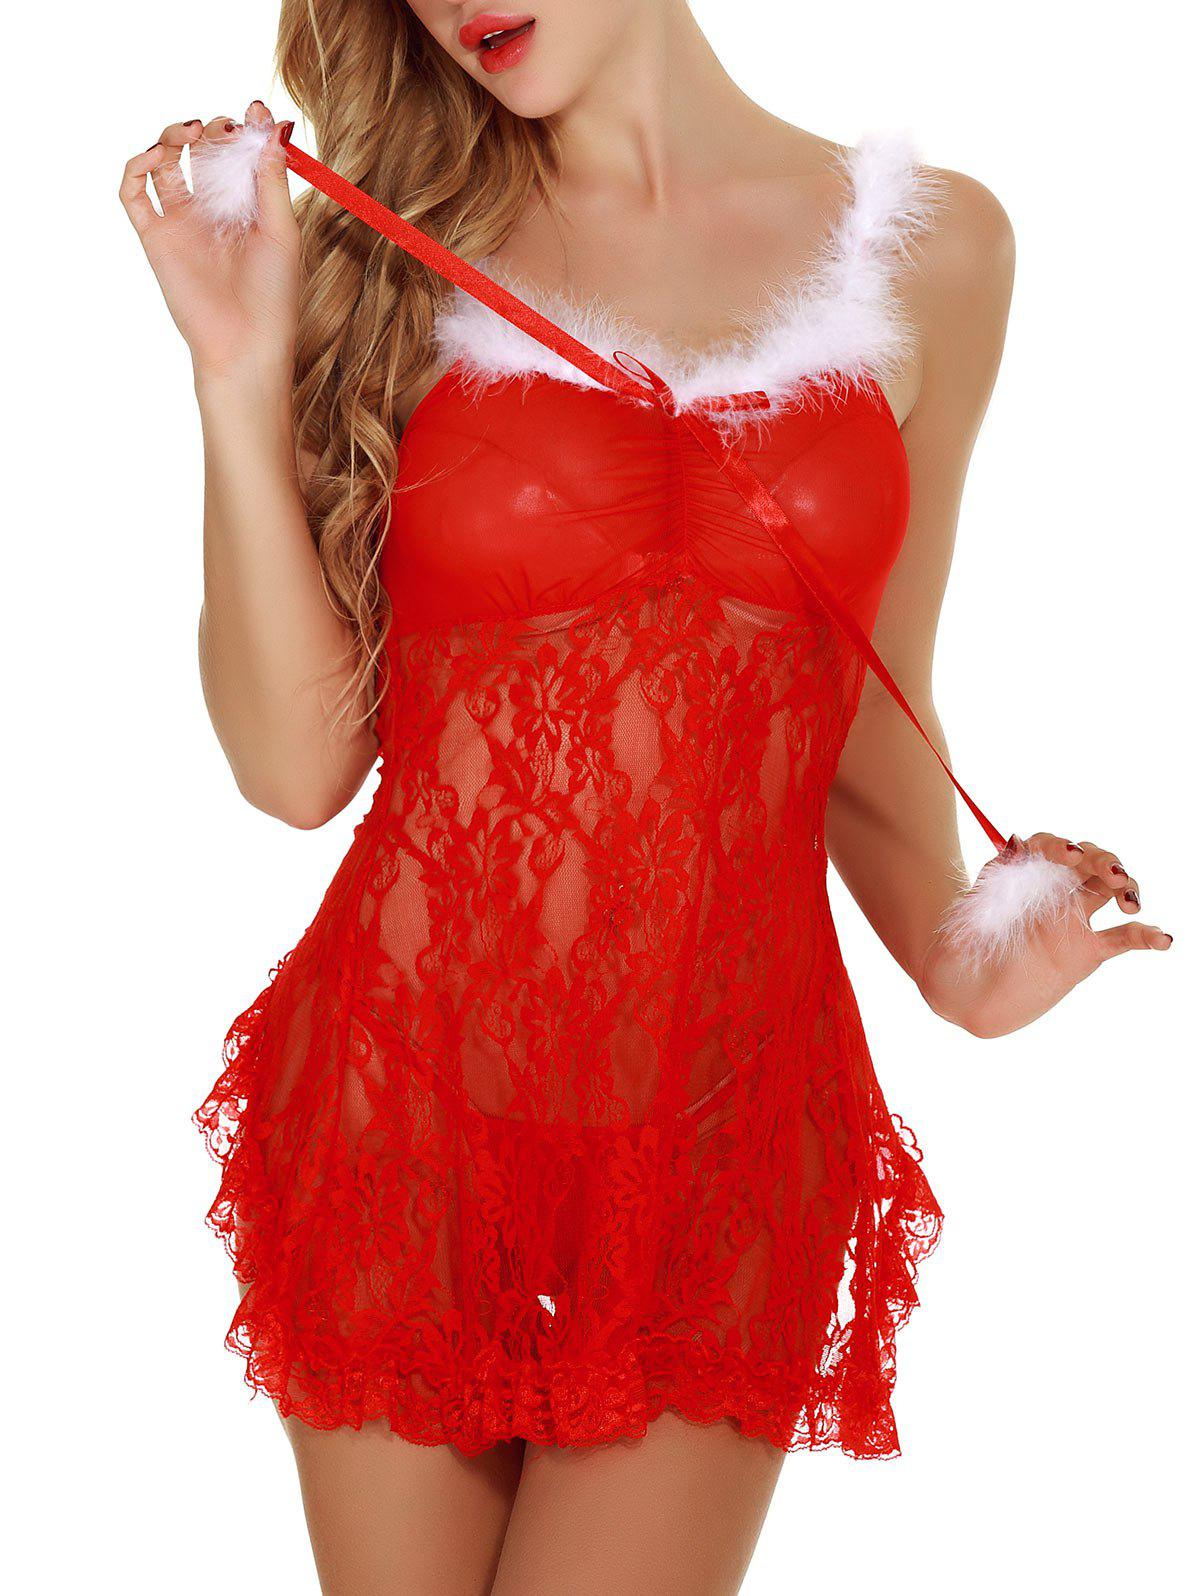 Back Slit See Through Lace Christmas Lingerie Babydoll - RED S